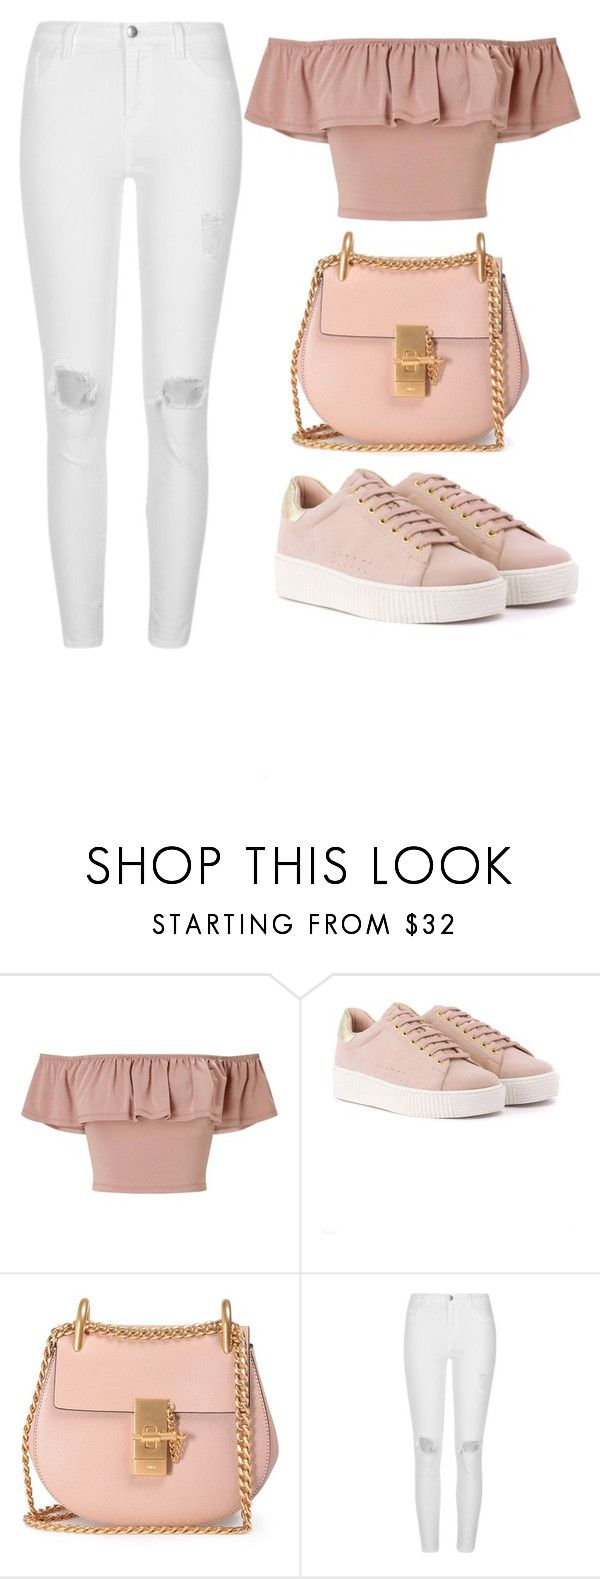 """""""Girly"""" by tovenilsen on Polyvore featuring Miss Selfridge, Chloé and River Island"""